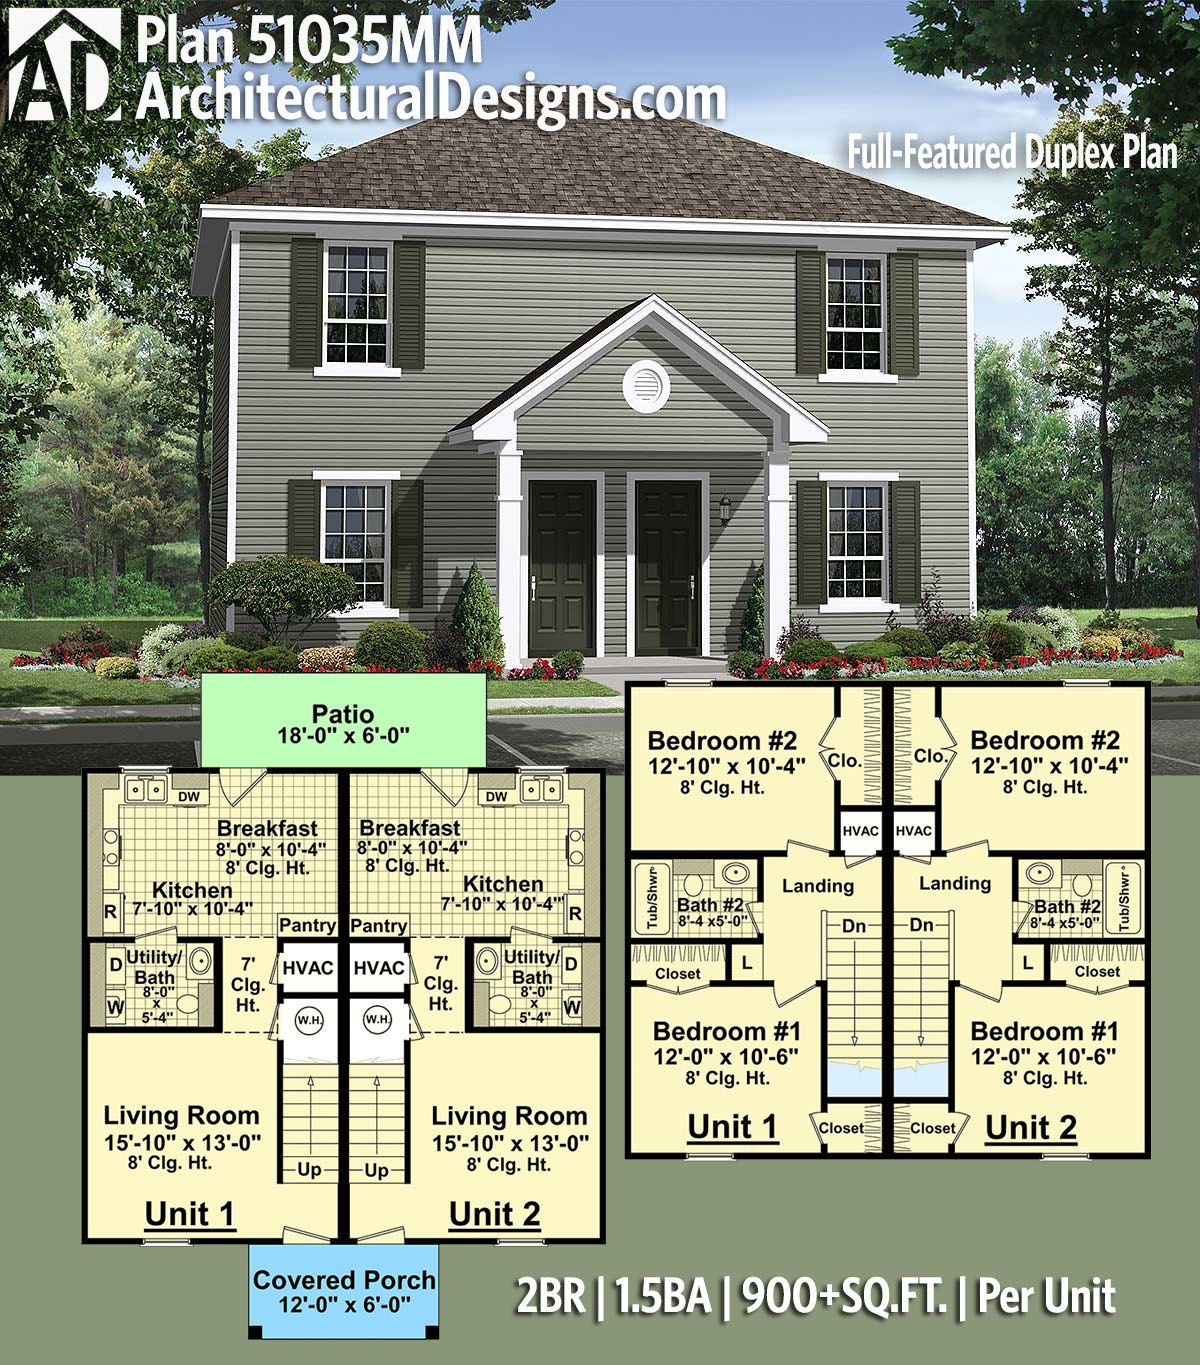 Plan 51035mm Full Featured Duplex Plan In 2020 Duplex Plans Family House Plans Townhouse Designs